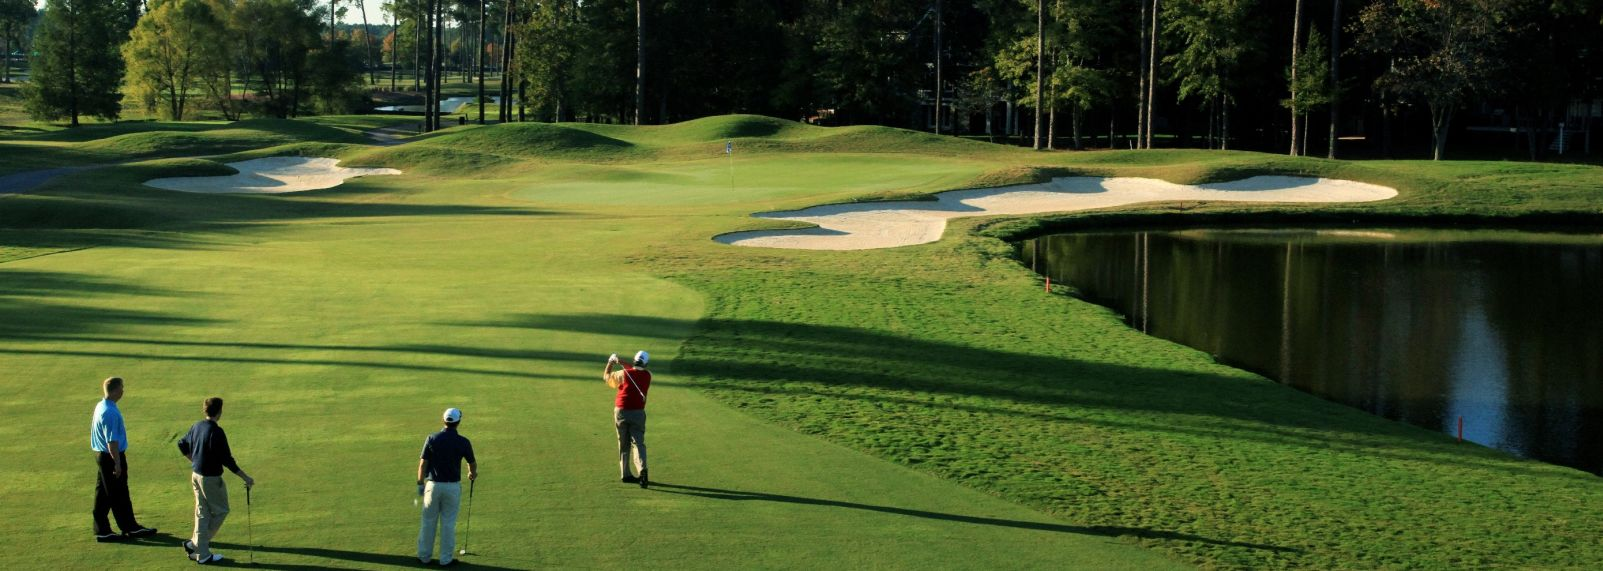 Best Golf Course in the Triangle